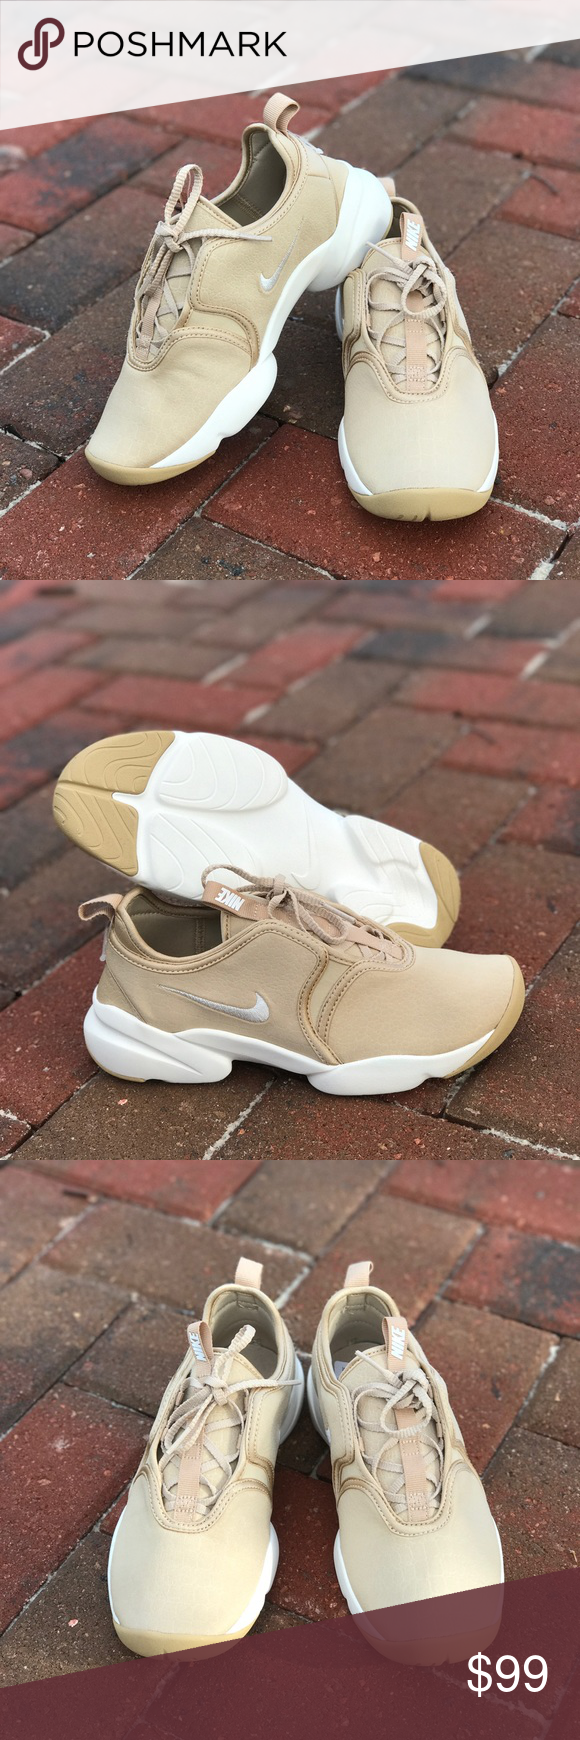 ca66bccbeb NWT Nike Loden Pinnacle Ivory WMNS Brand new, no box, samples shoes. Price